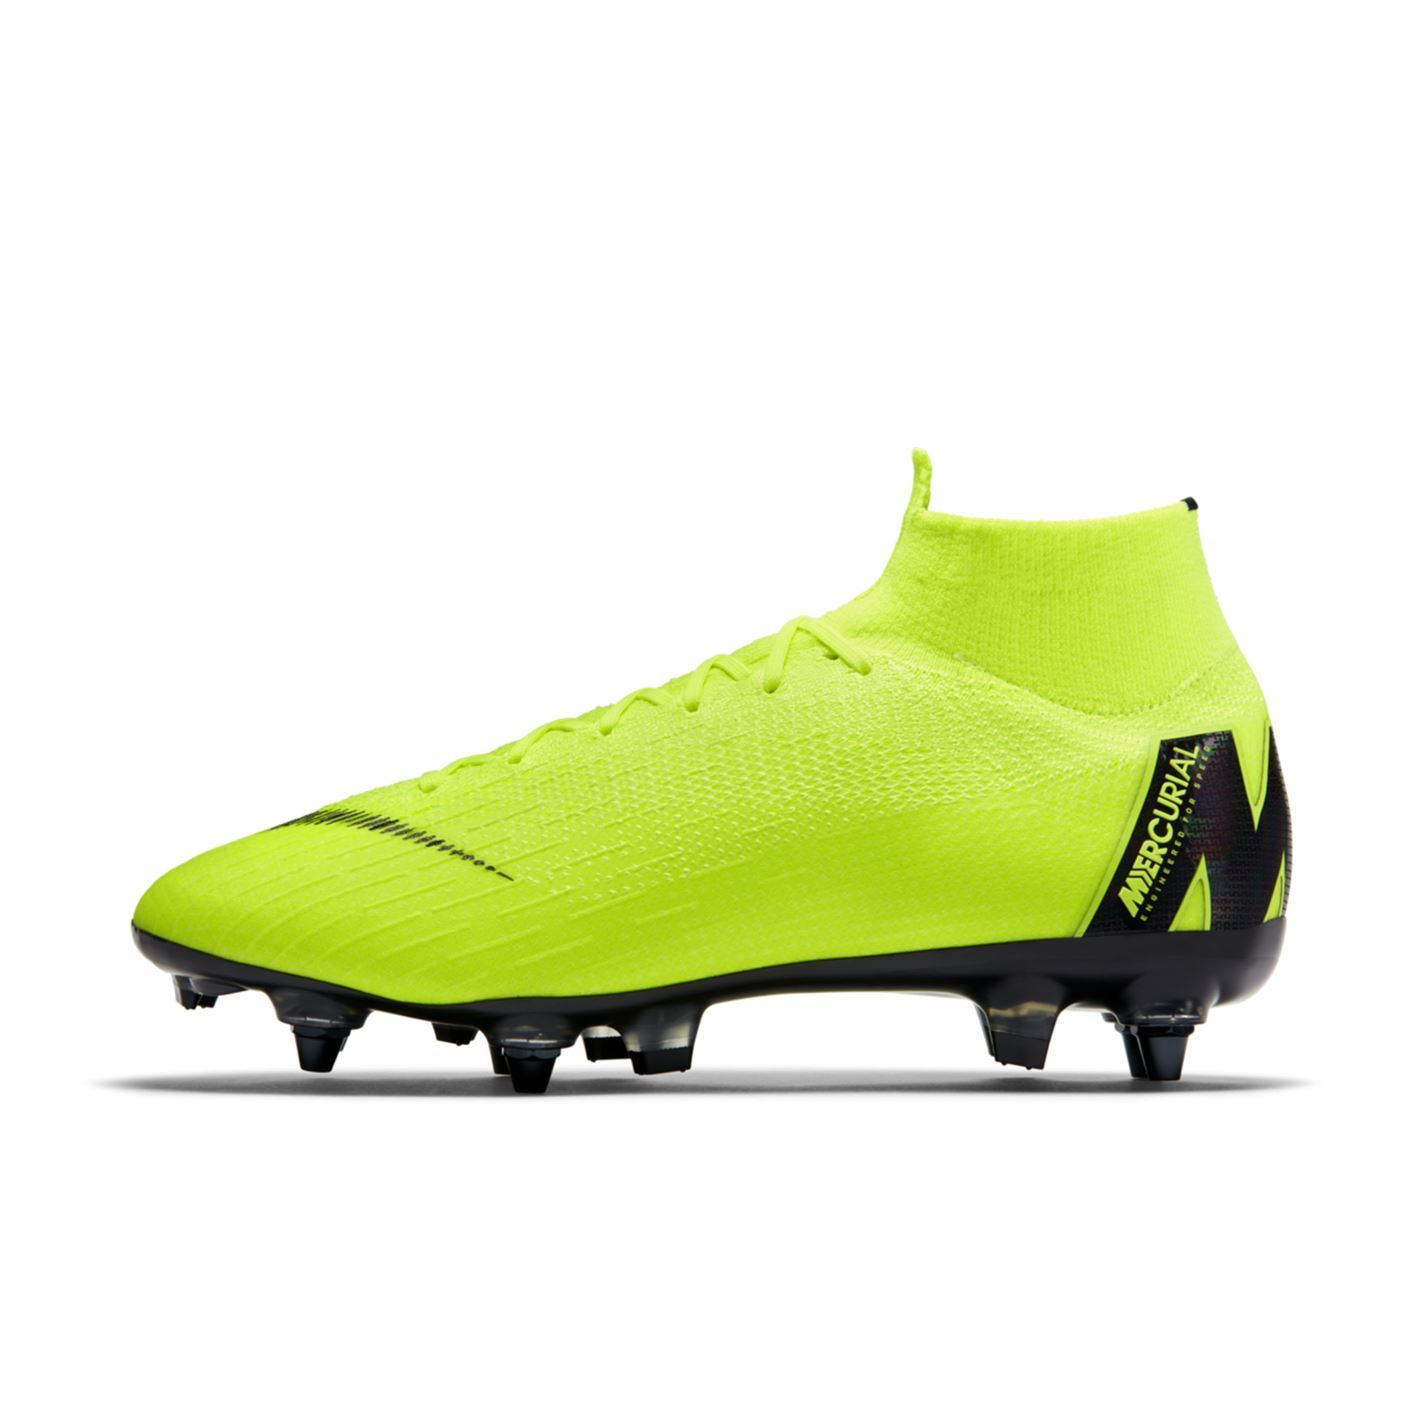 hot sale online fdf07 5ea89 Details about Nike Mercurial Superfly Elite DF Soft Ground Football Boots  Mens Soccer Cleats